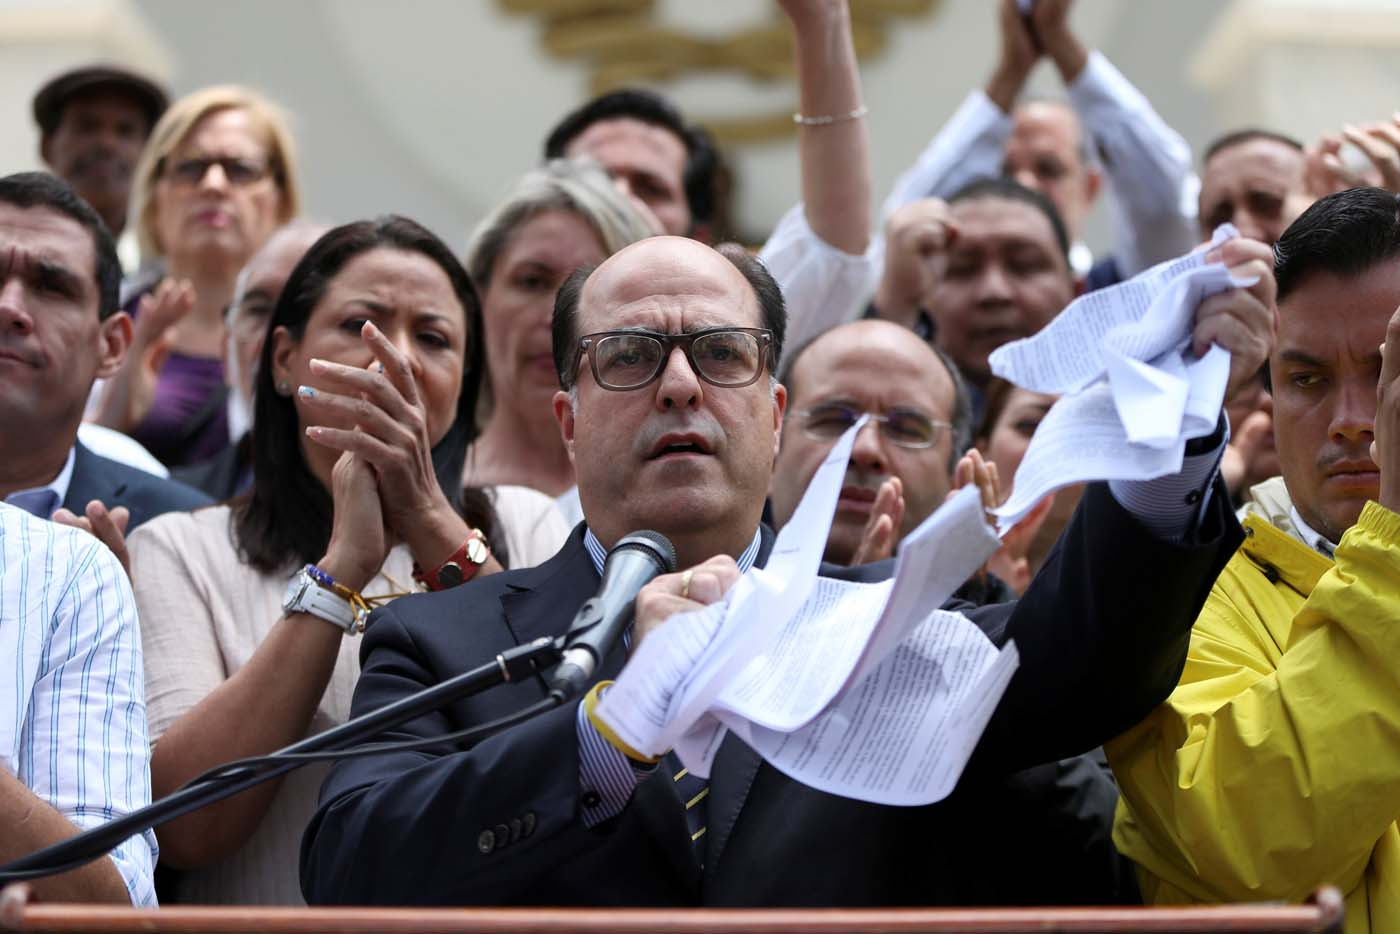 Julio Borges (C), President of the National Assembly and deputy of the Venezuelan coalition of opposition parties (MUD), tears a copy of a sentence of the Venezuela's Supreme Court during a news conference in Caracas, Venezuela March 30, 2017. REUTERS/Carlos Garcia Rawlins